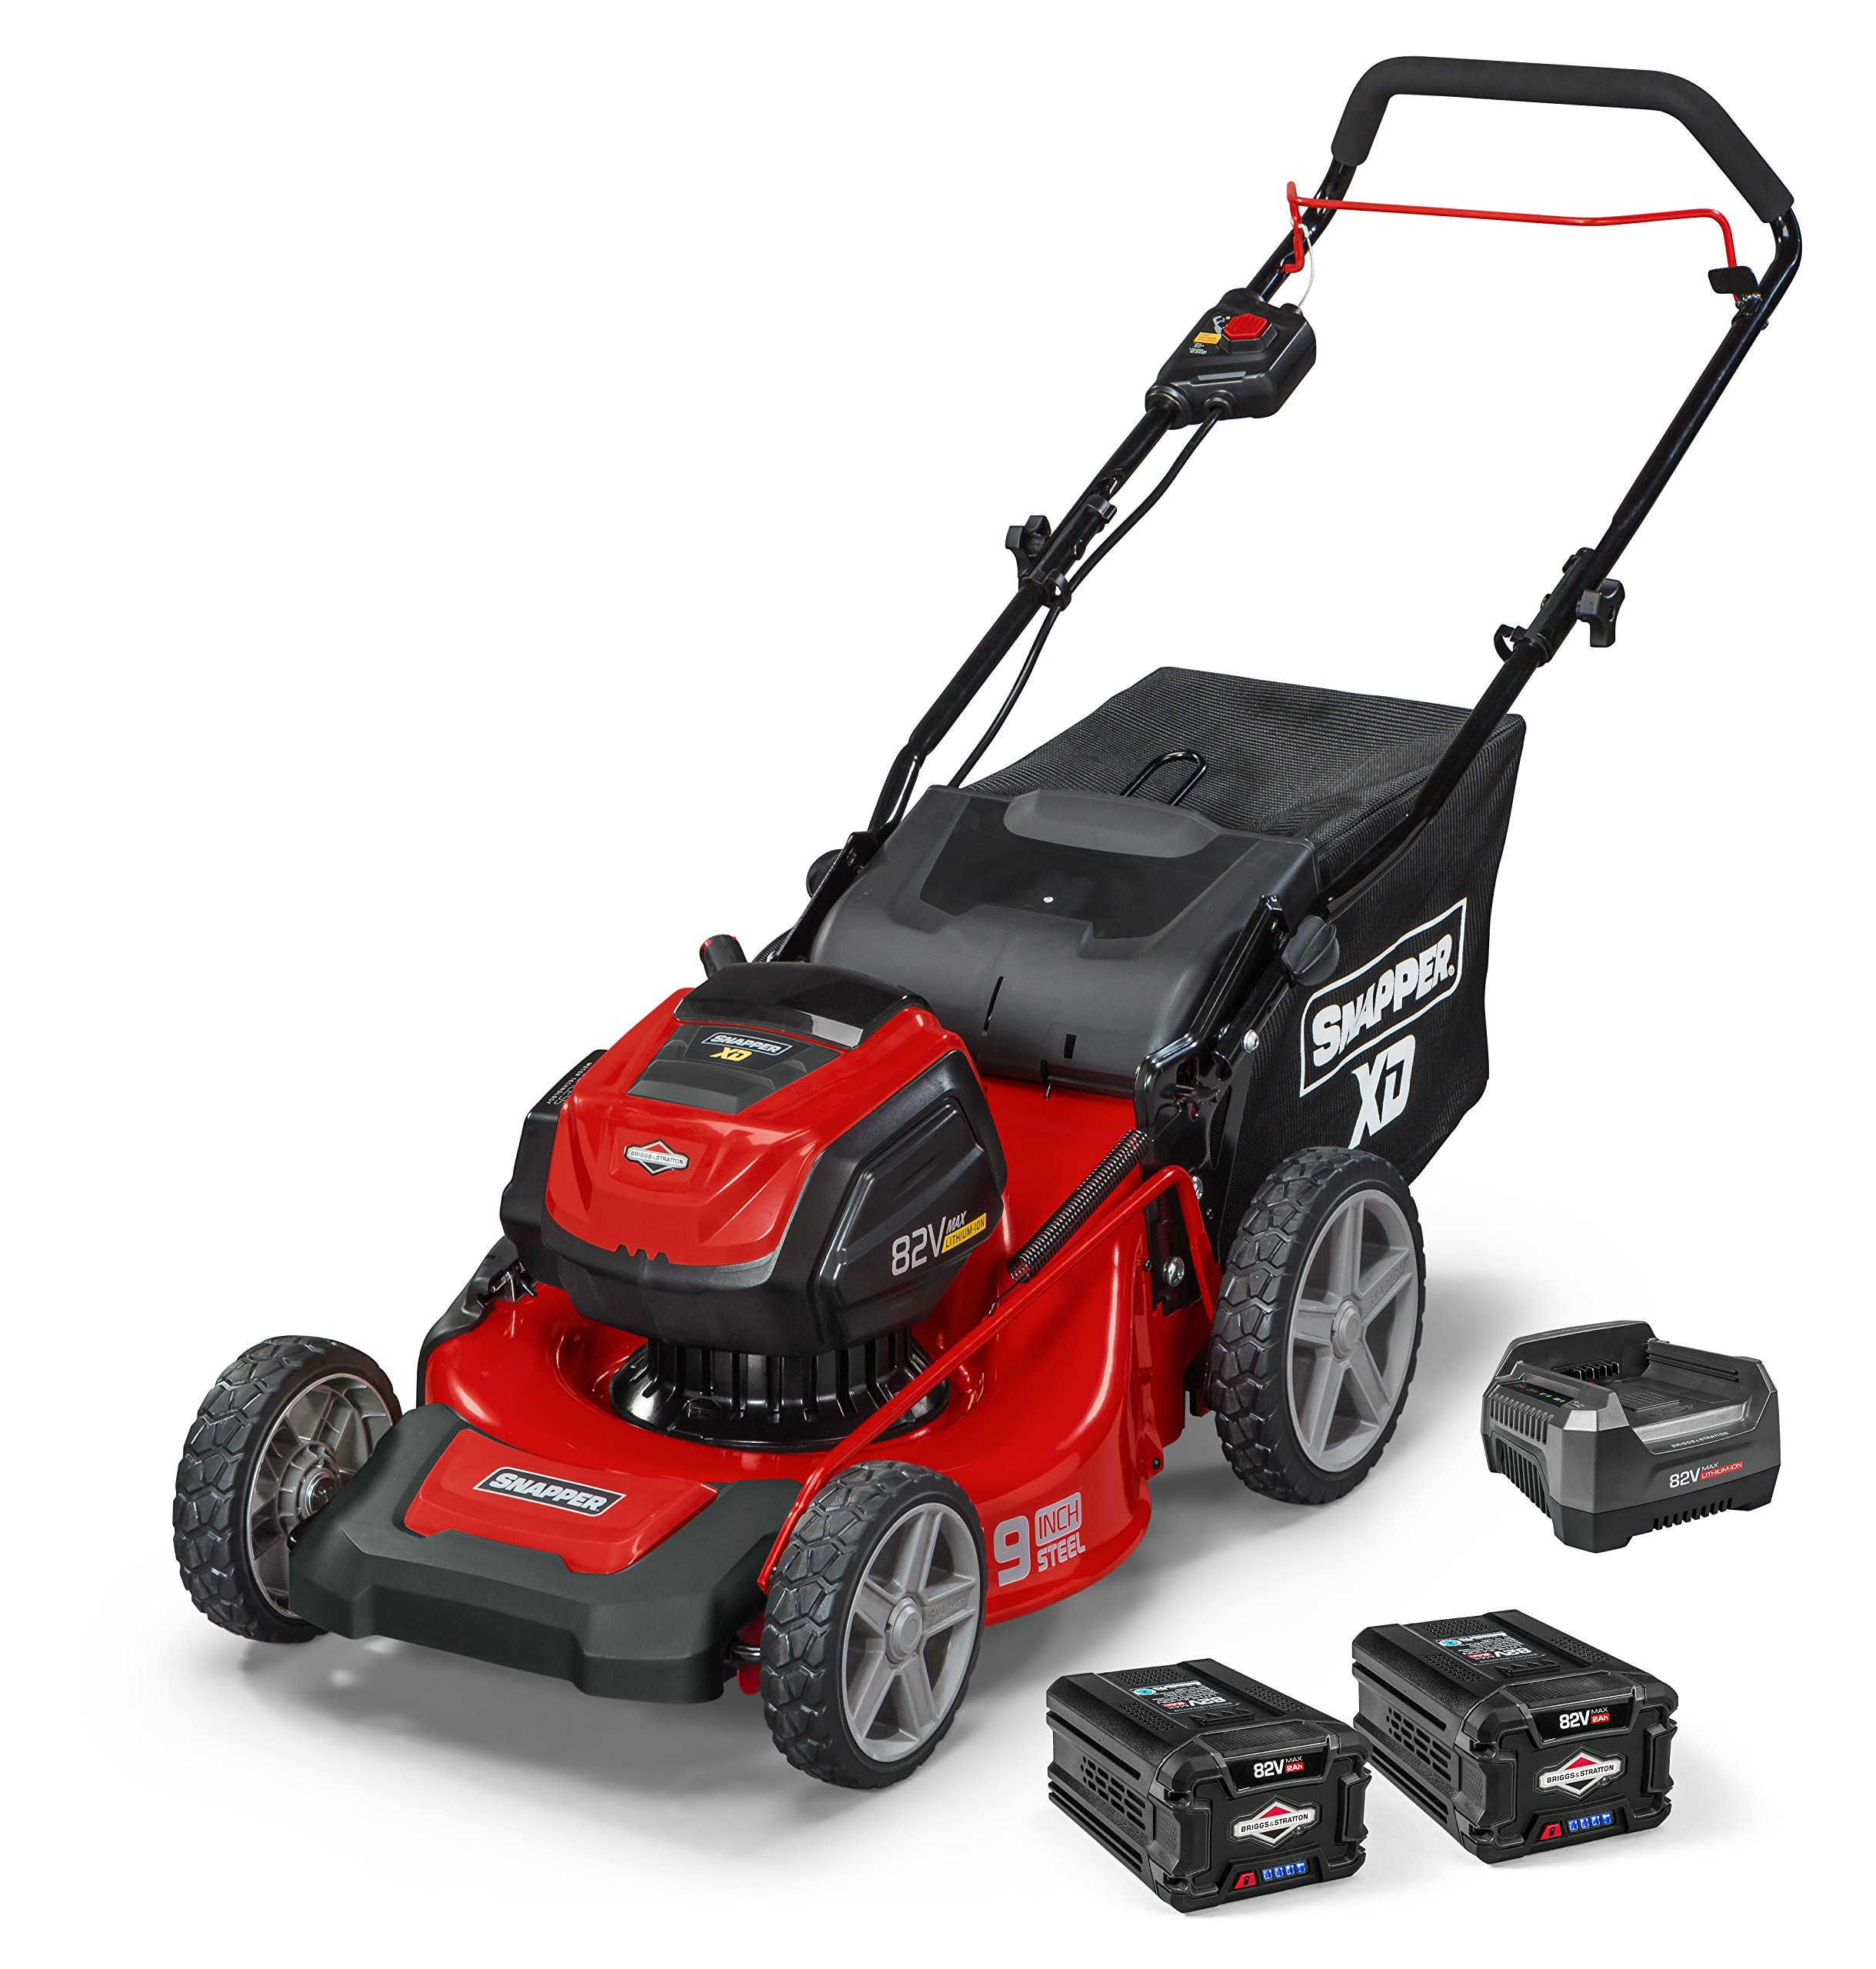 Snapper XD 82V MAX Electric Cordless 19-Inch Lawnmower Kit with (2) 2.0 Batteries & (1) Rapid Charger, 1687915, SXD19PWM82K by Snapper